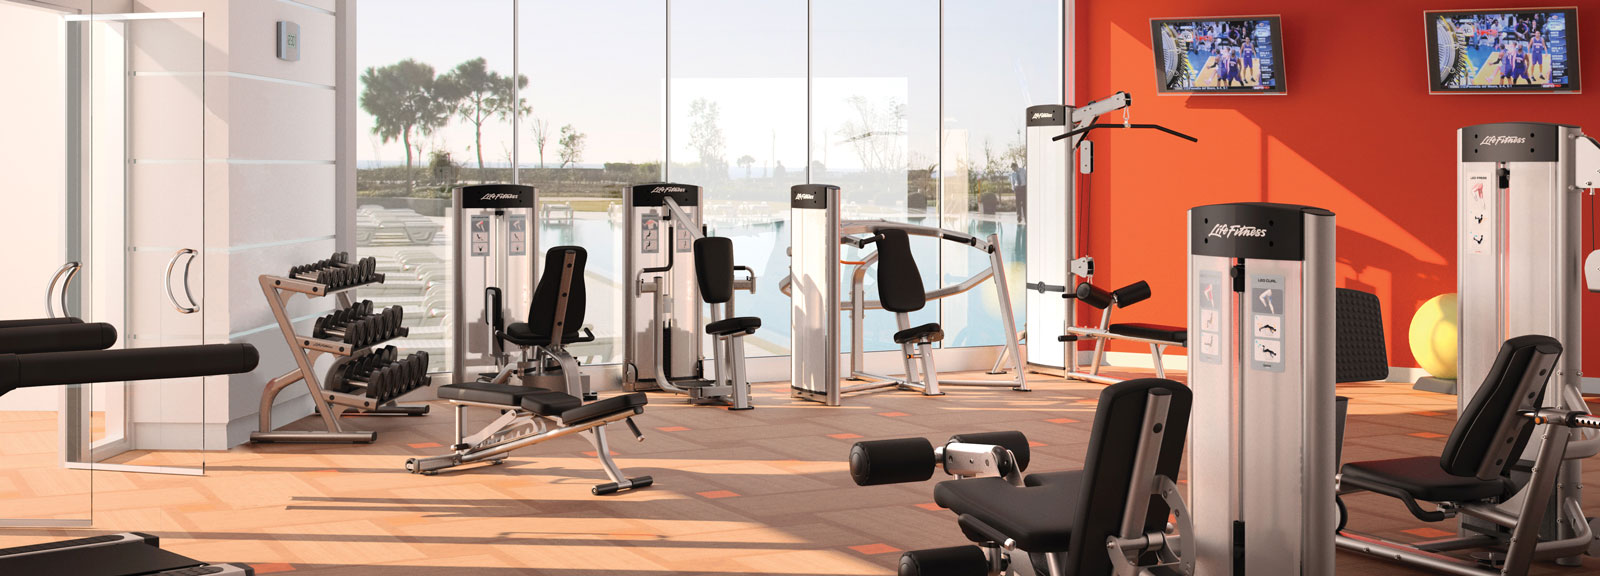 Cost to Lease Gym Equipment - Prices & Leasing vs. Buying